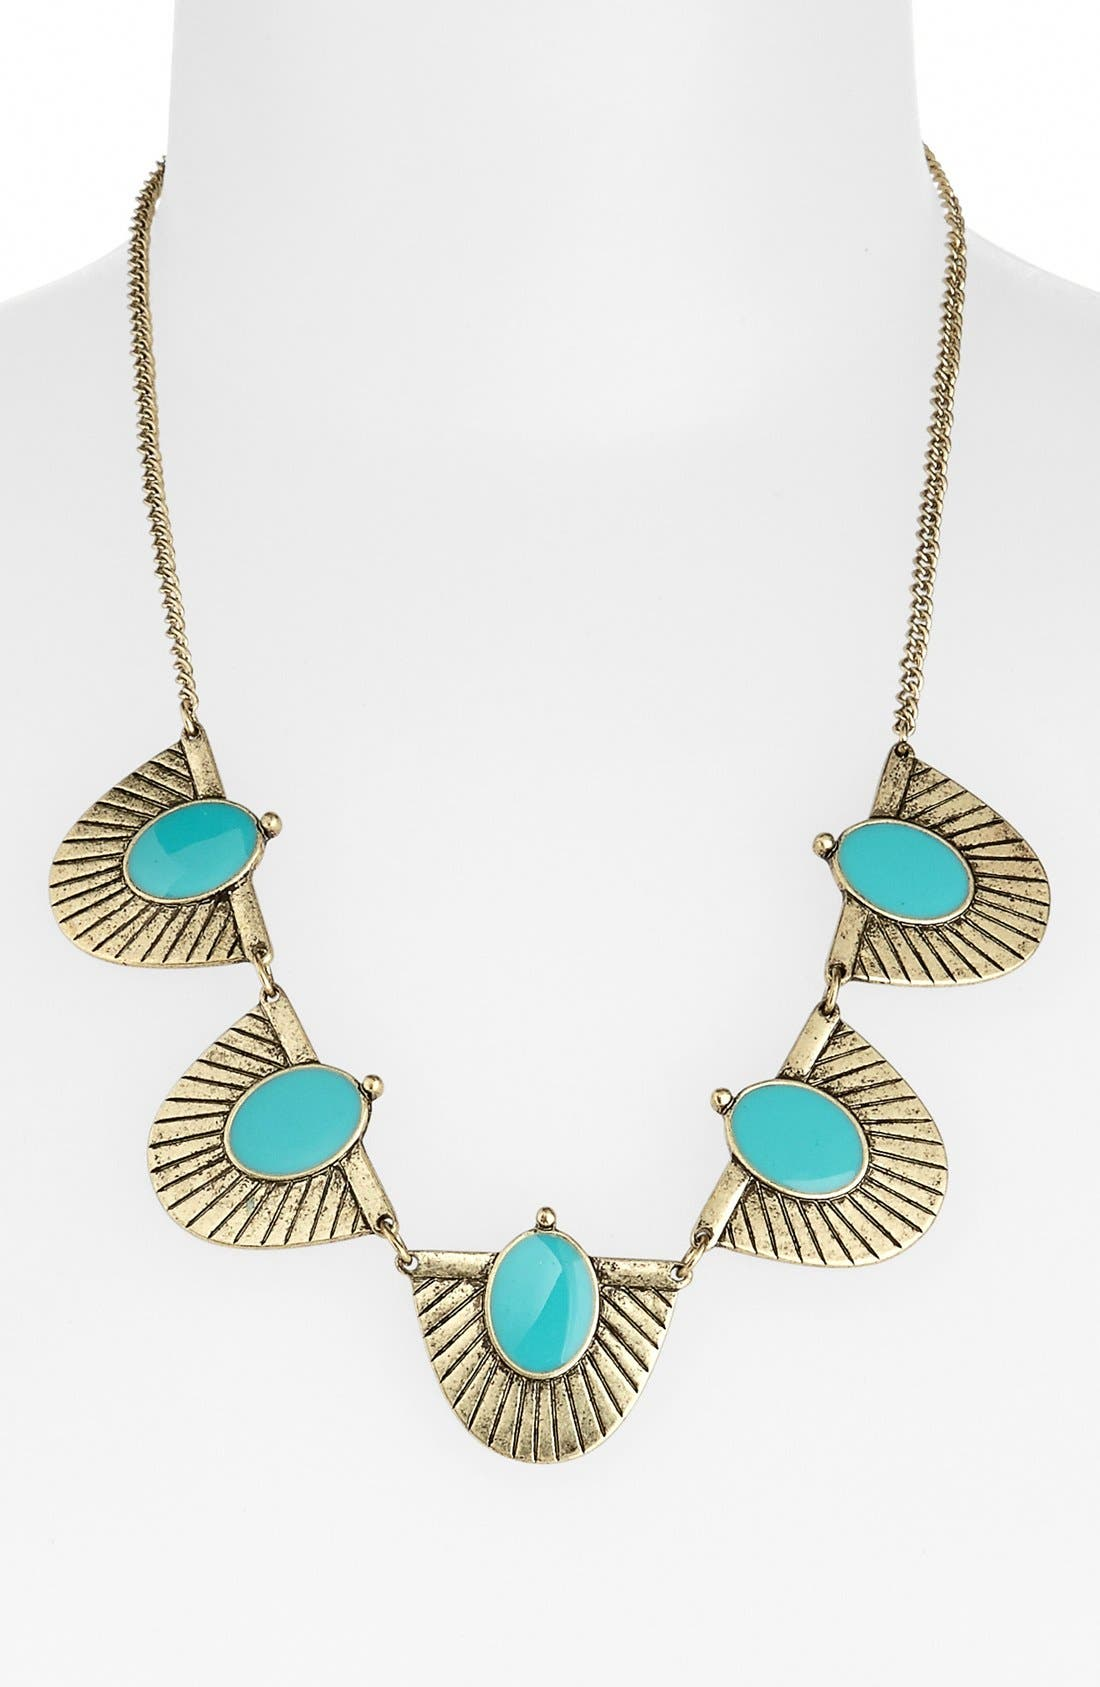 Alternate Image 1 Selected - Stephan & Co. 'Aztec' Statement Necklace